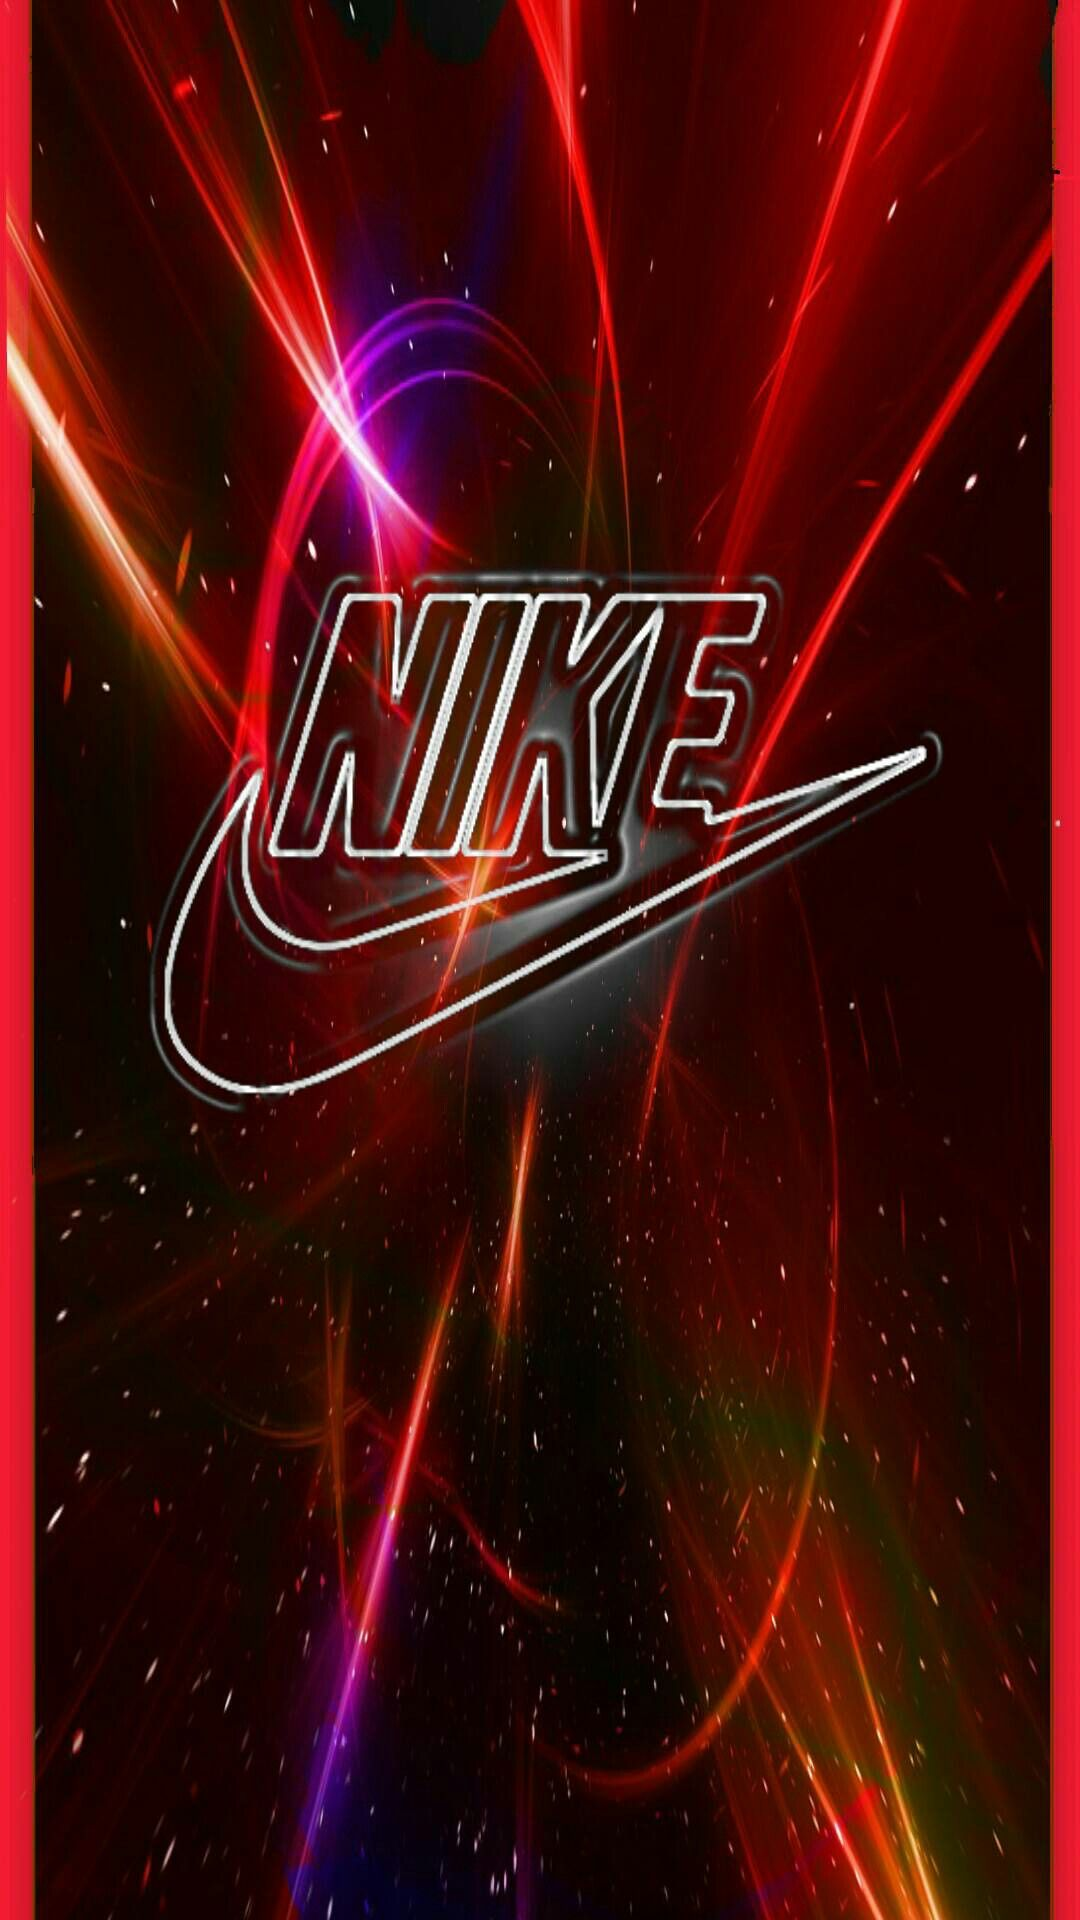 Nike Red Picture in 2020 Hd wallpaper iphone, Nike logo